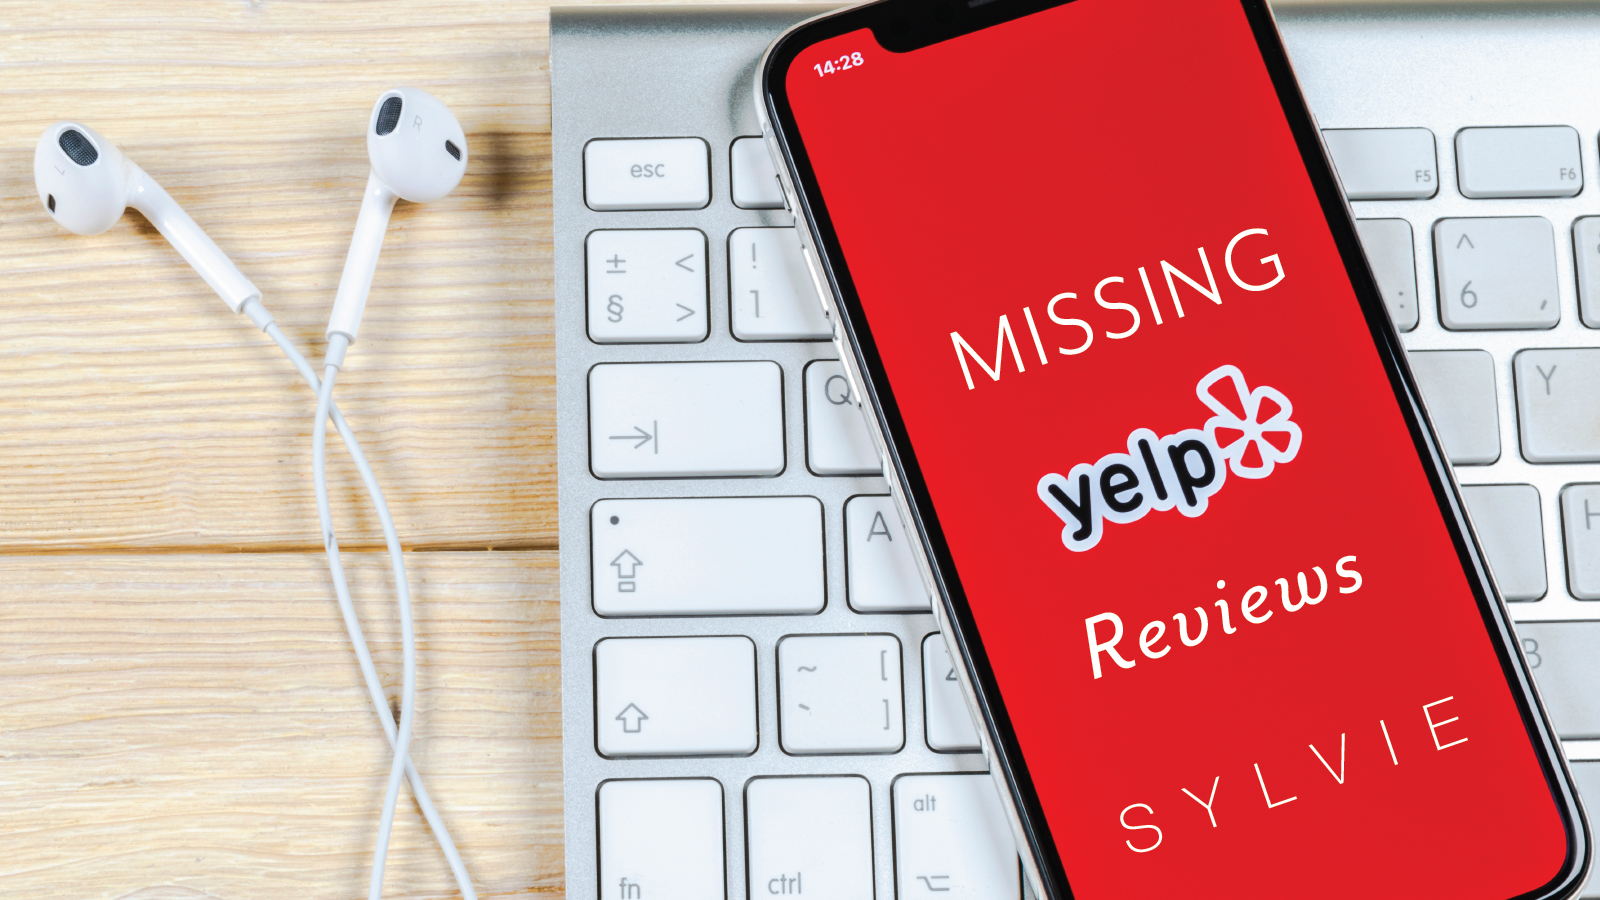 Missing Yelp Reviews?